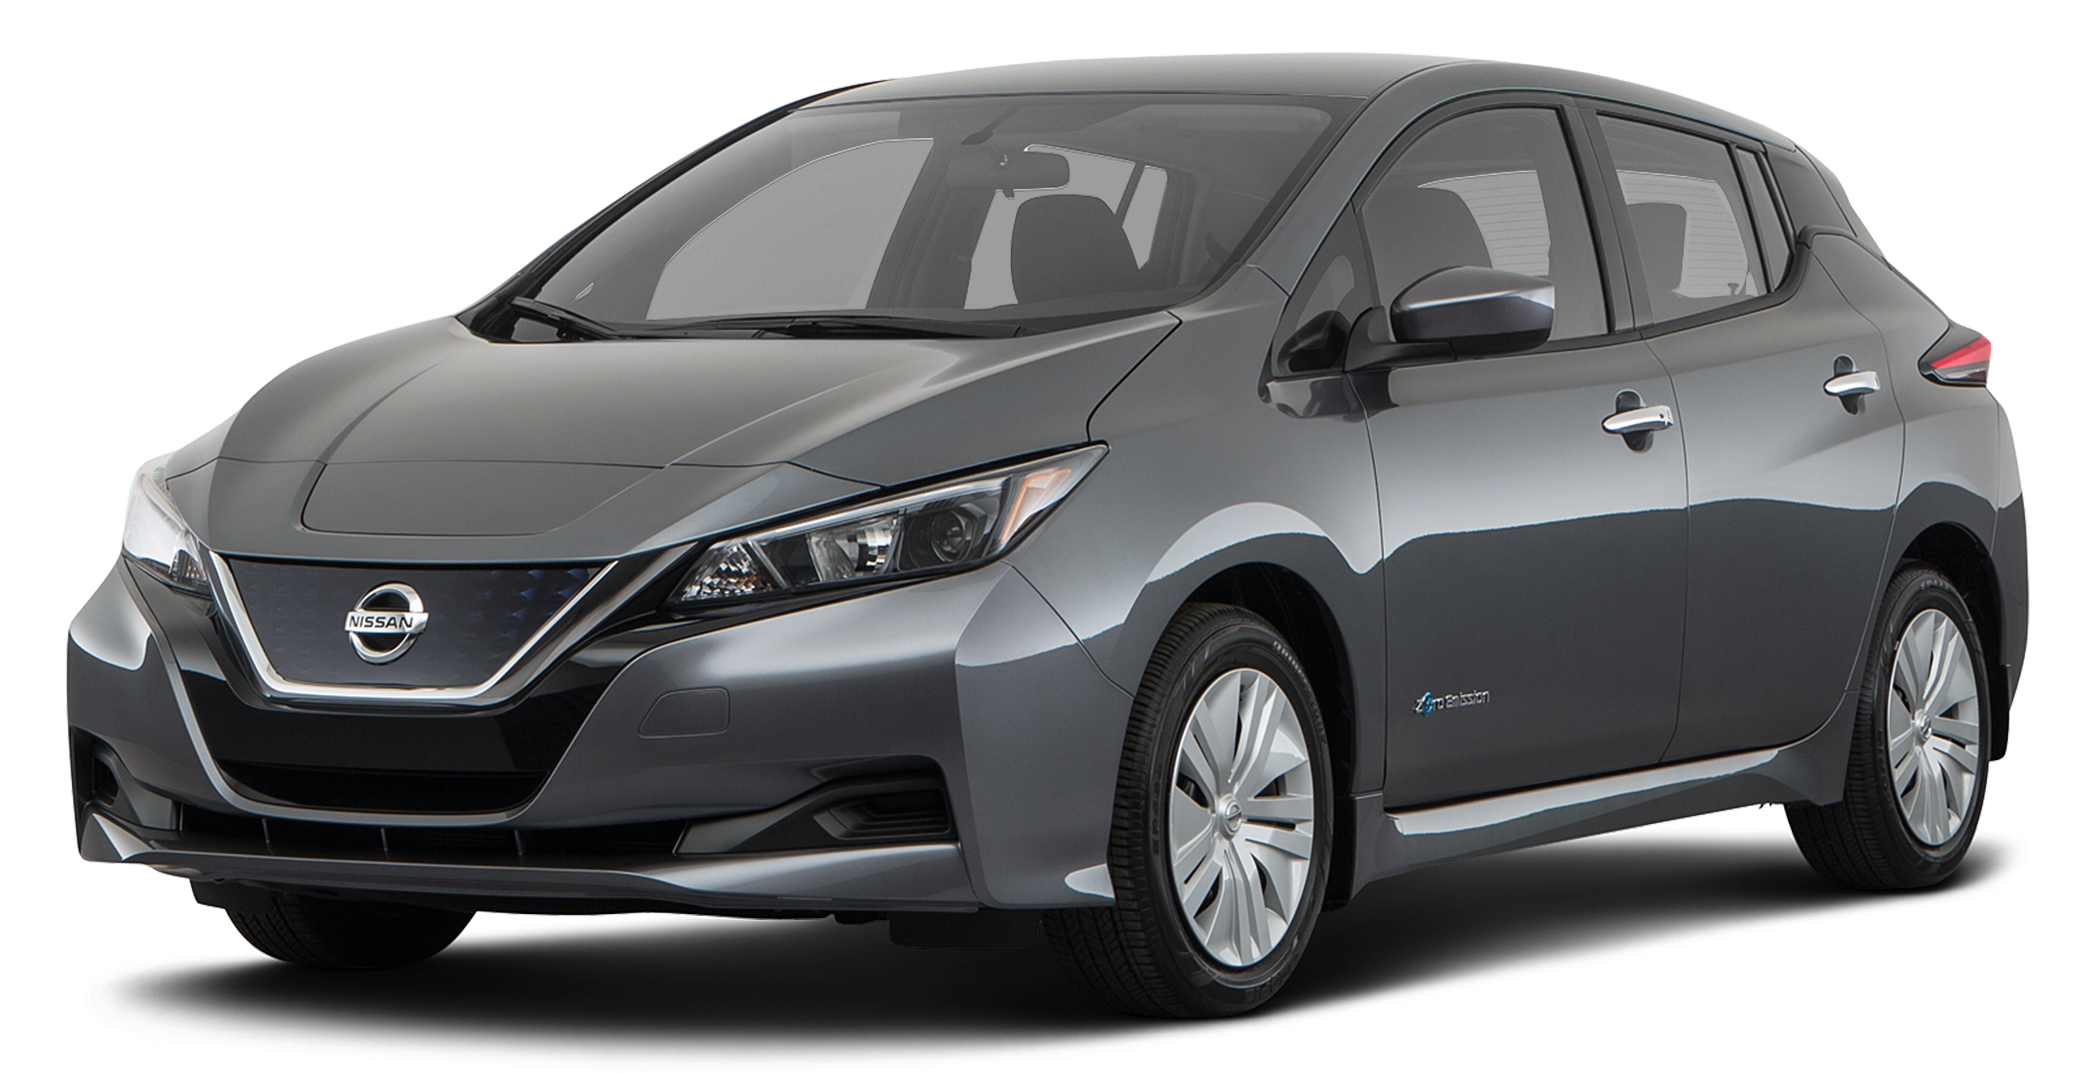 2016 Nissan LEAF Hatchback